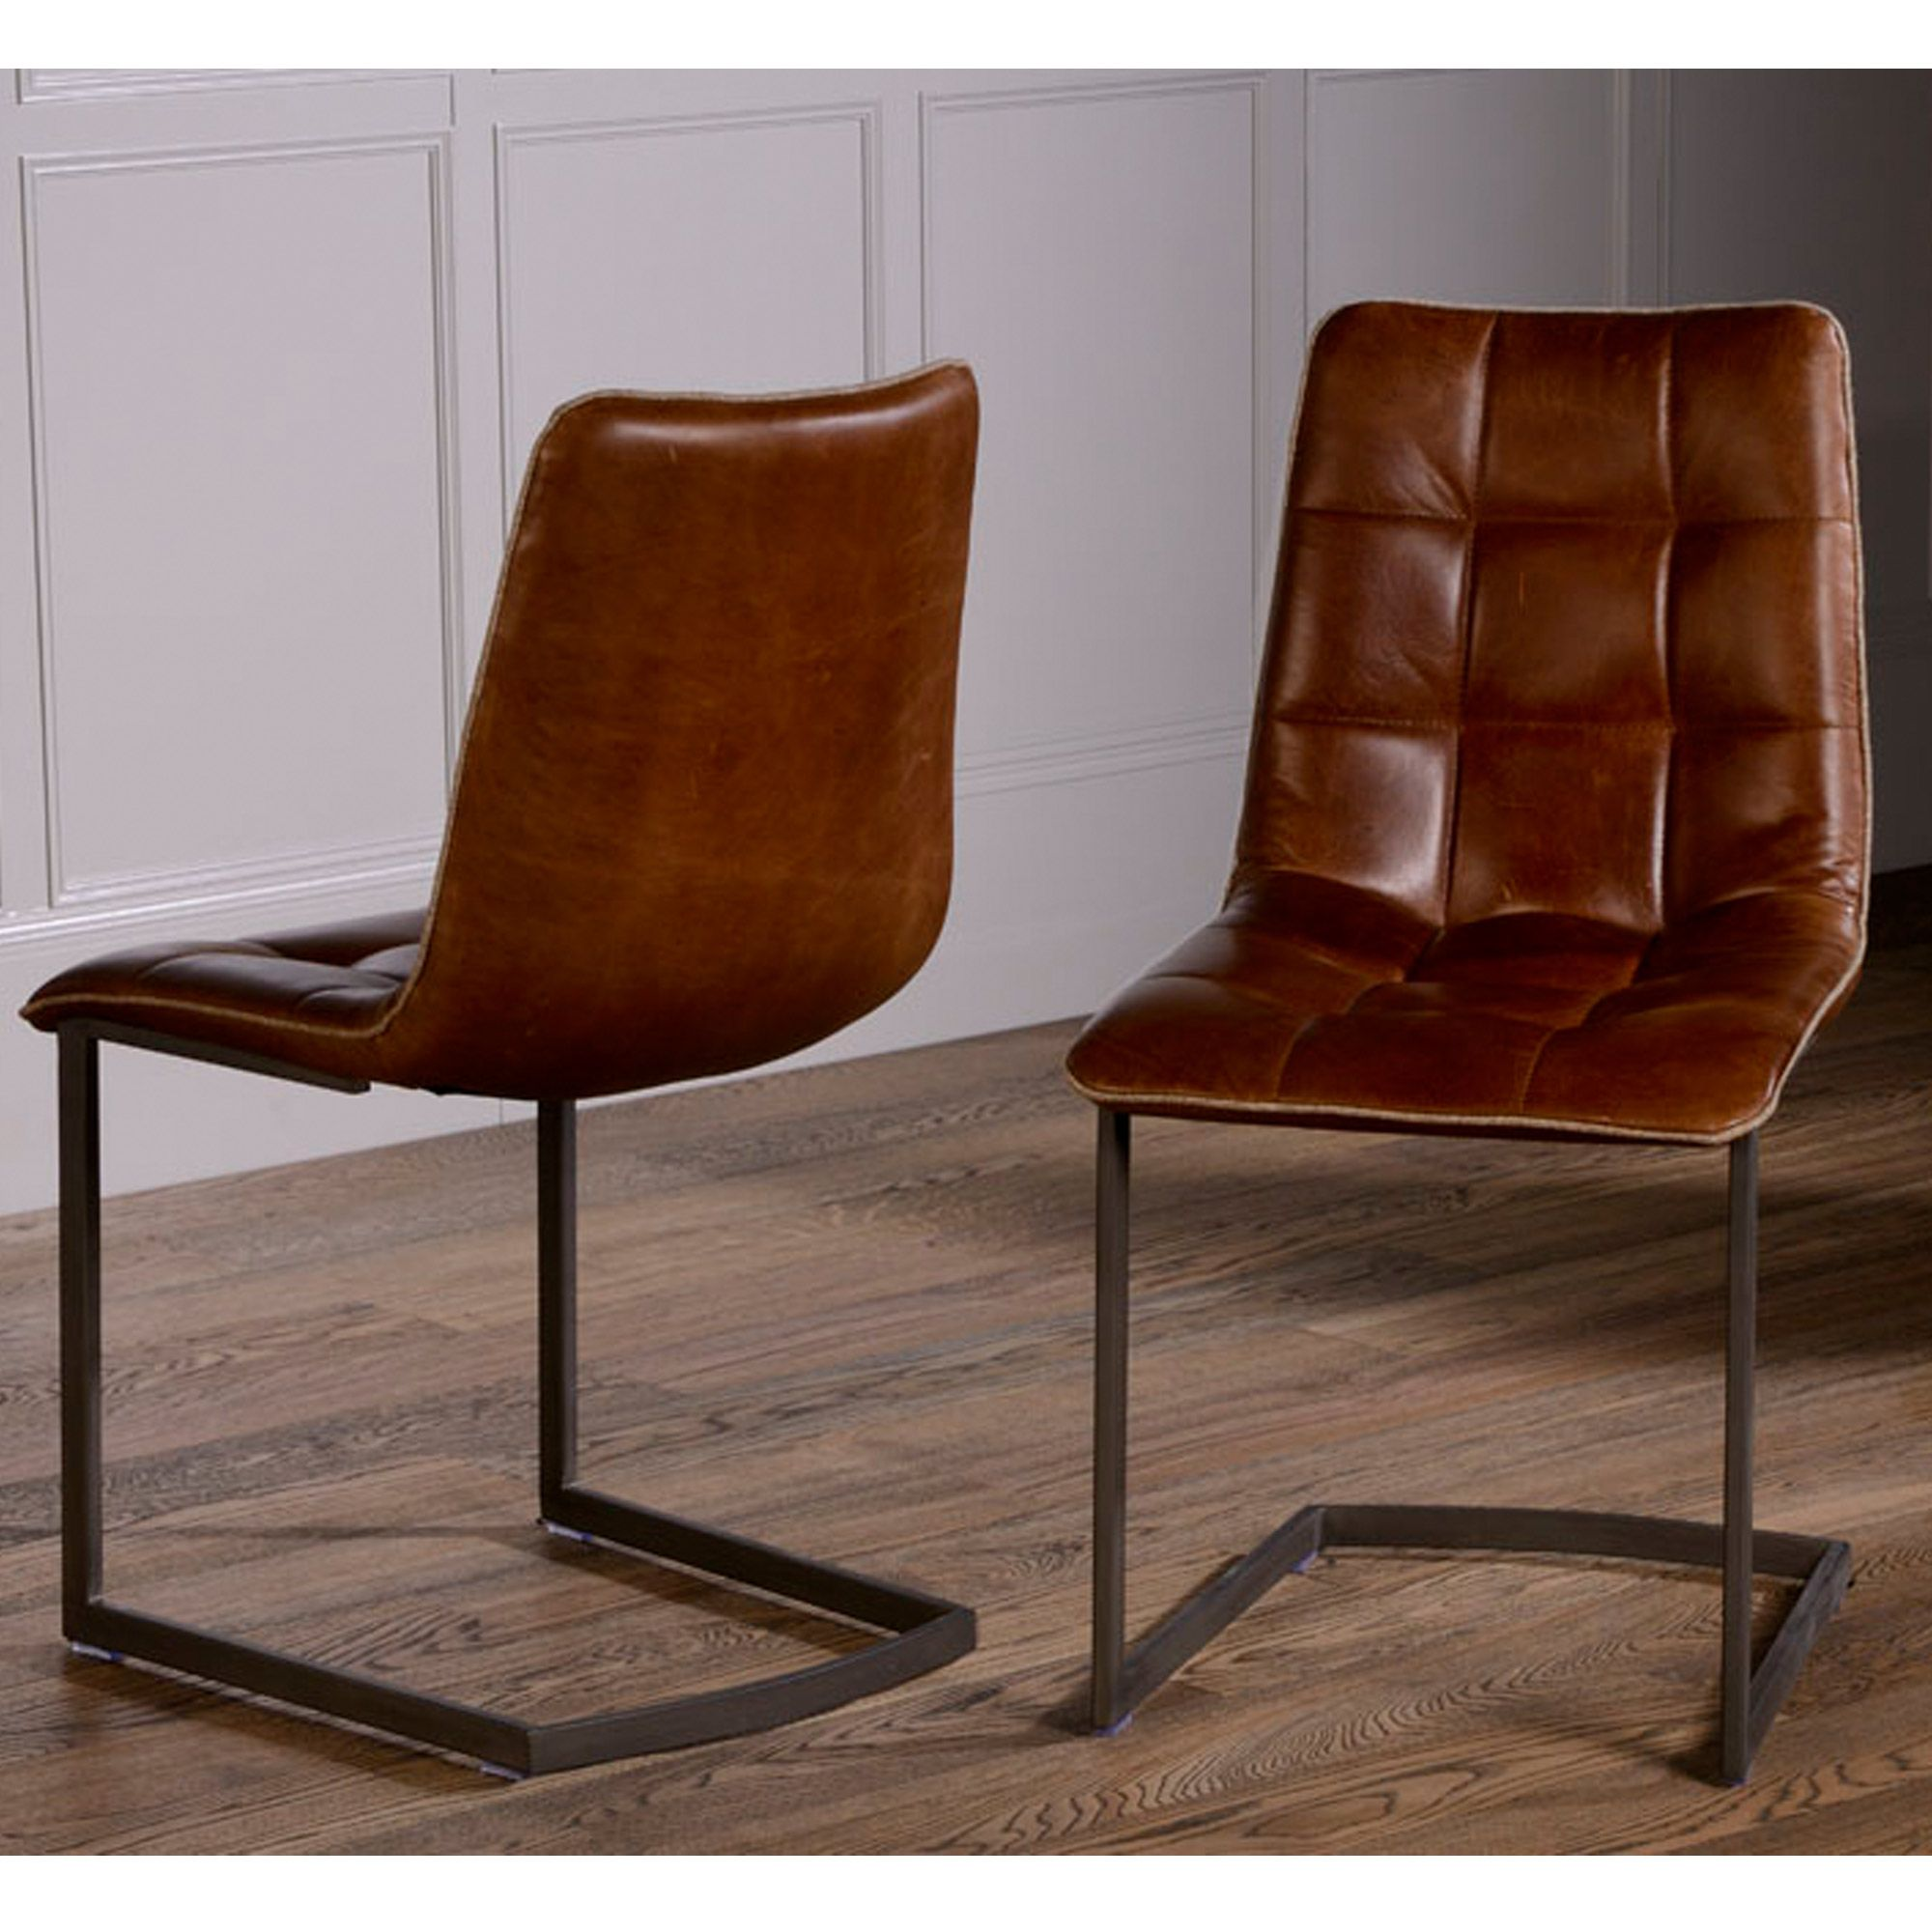 Dolomite Leather Dining Chair  H O M E  Leather dining